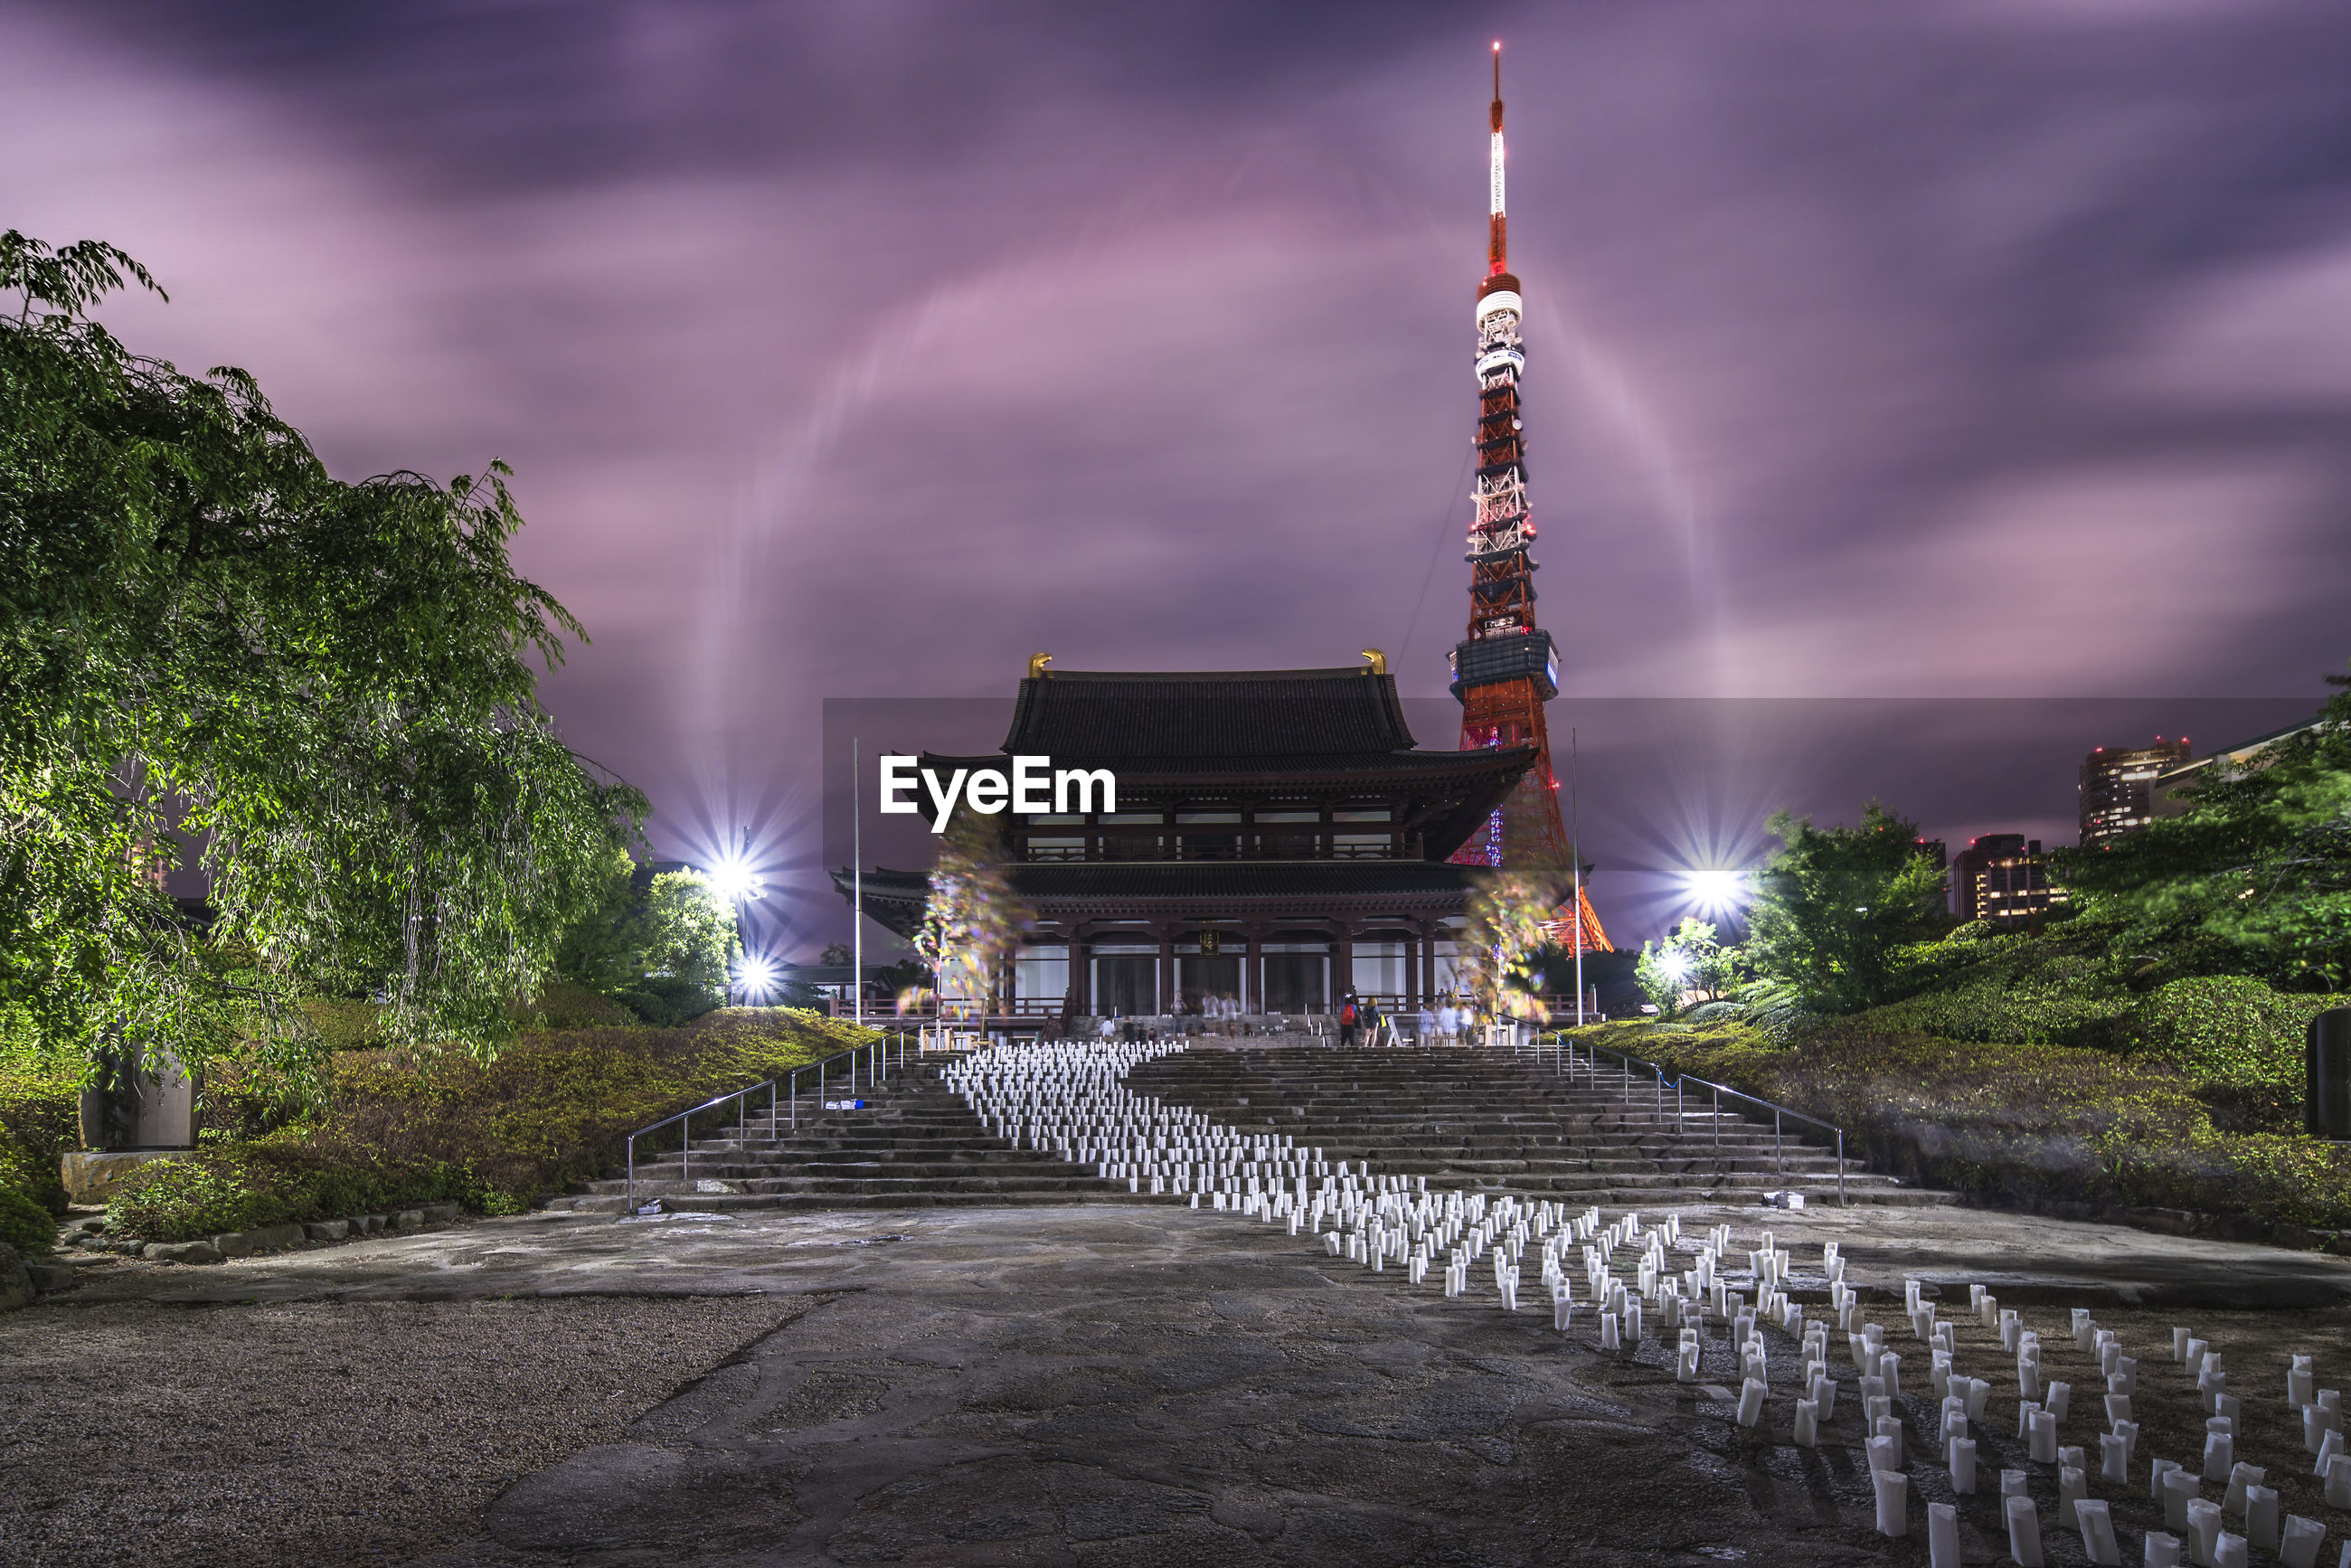 ILLUMINATED TEMPLE AMIDST BUILDINGS IN CITY